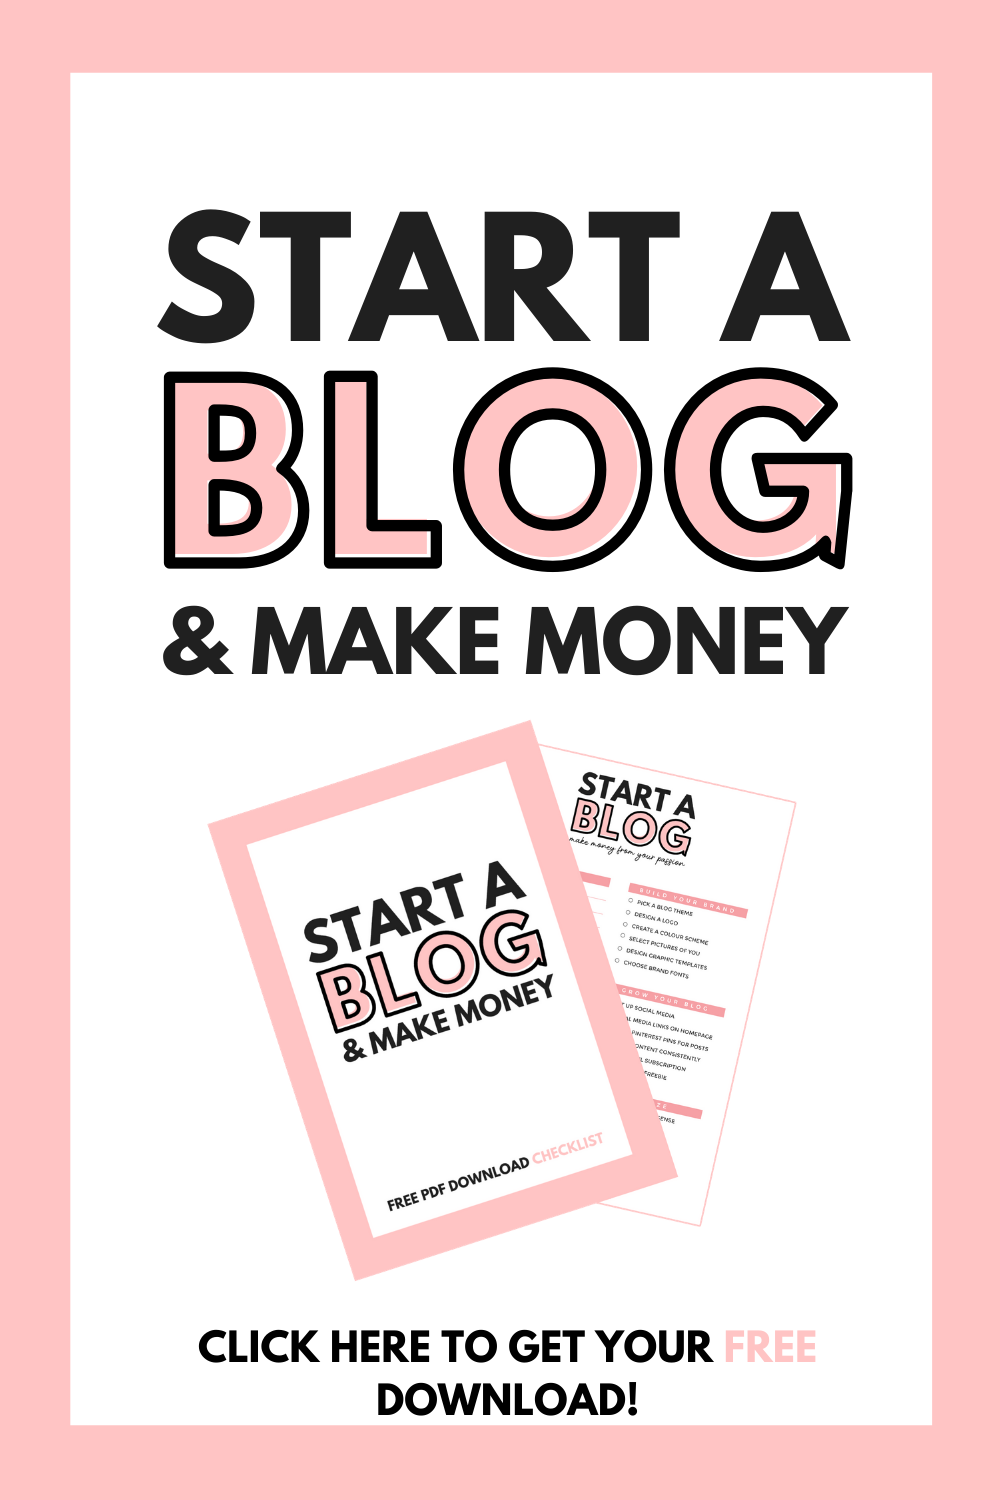 START A BLOG & MAKE MONEY | FREE DOWNLOAD | HAYLEYXMARTIN